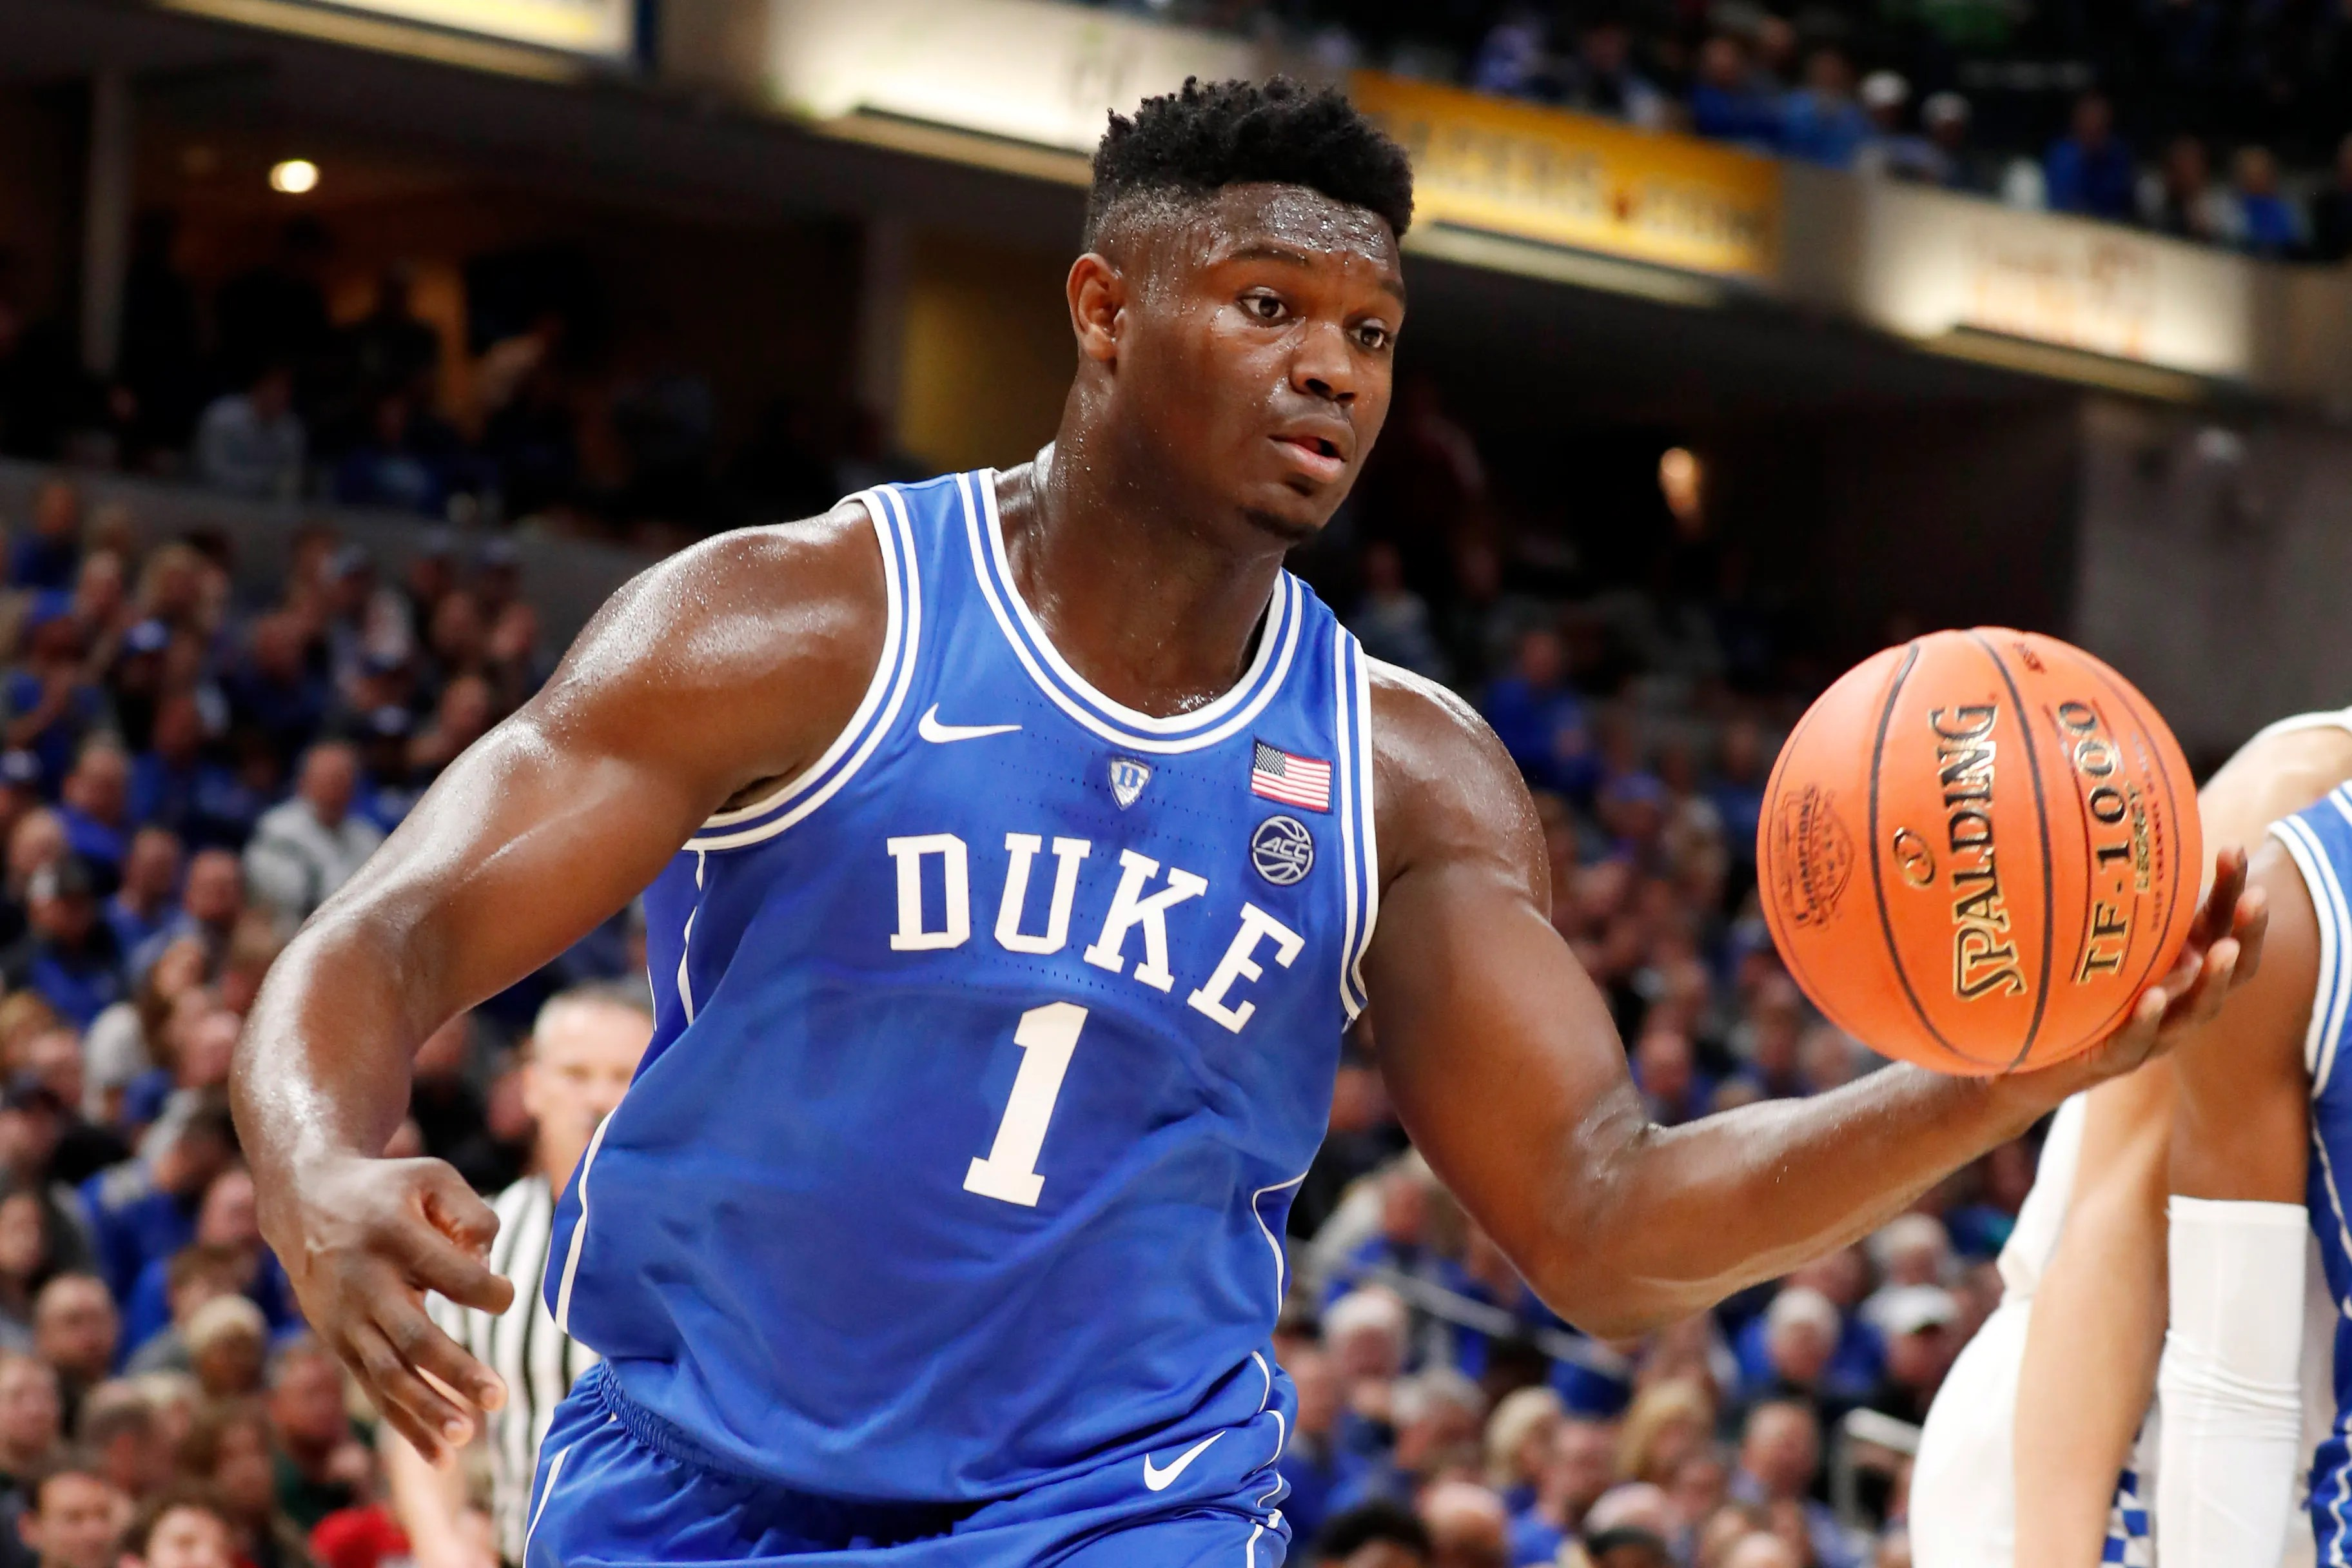 also duke   zion williamson produces highlight reel in blowout of kentucky rh indystar